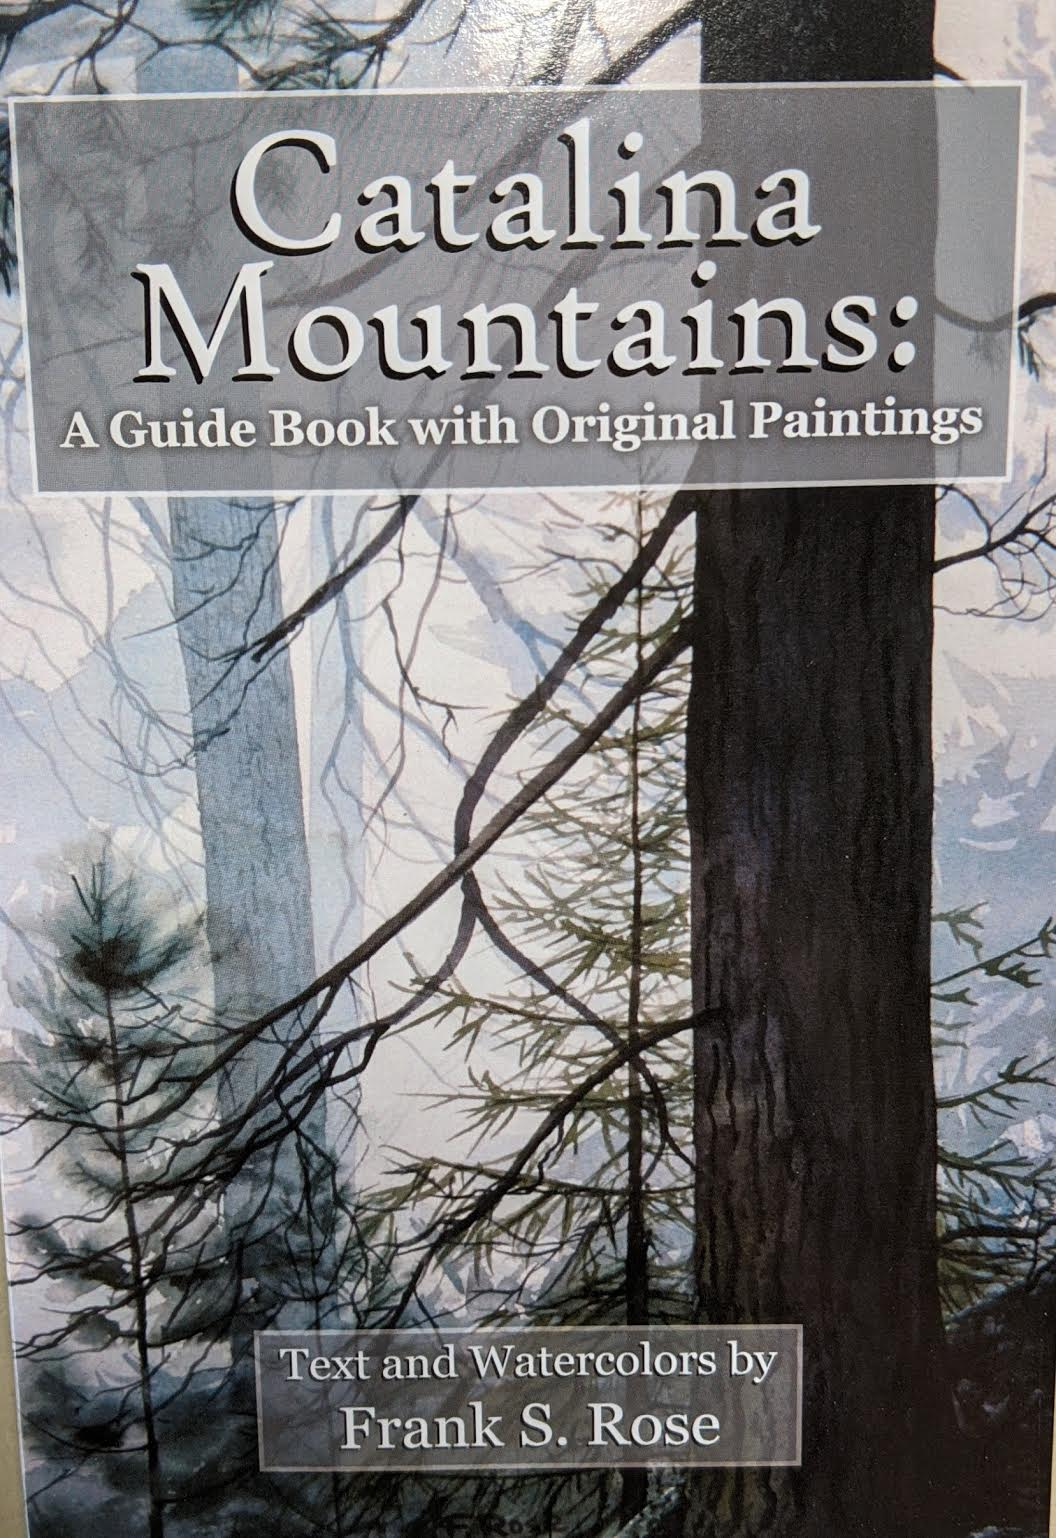 Catalina Mountains: A Guide Book with Original Paintings